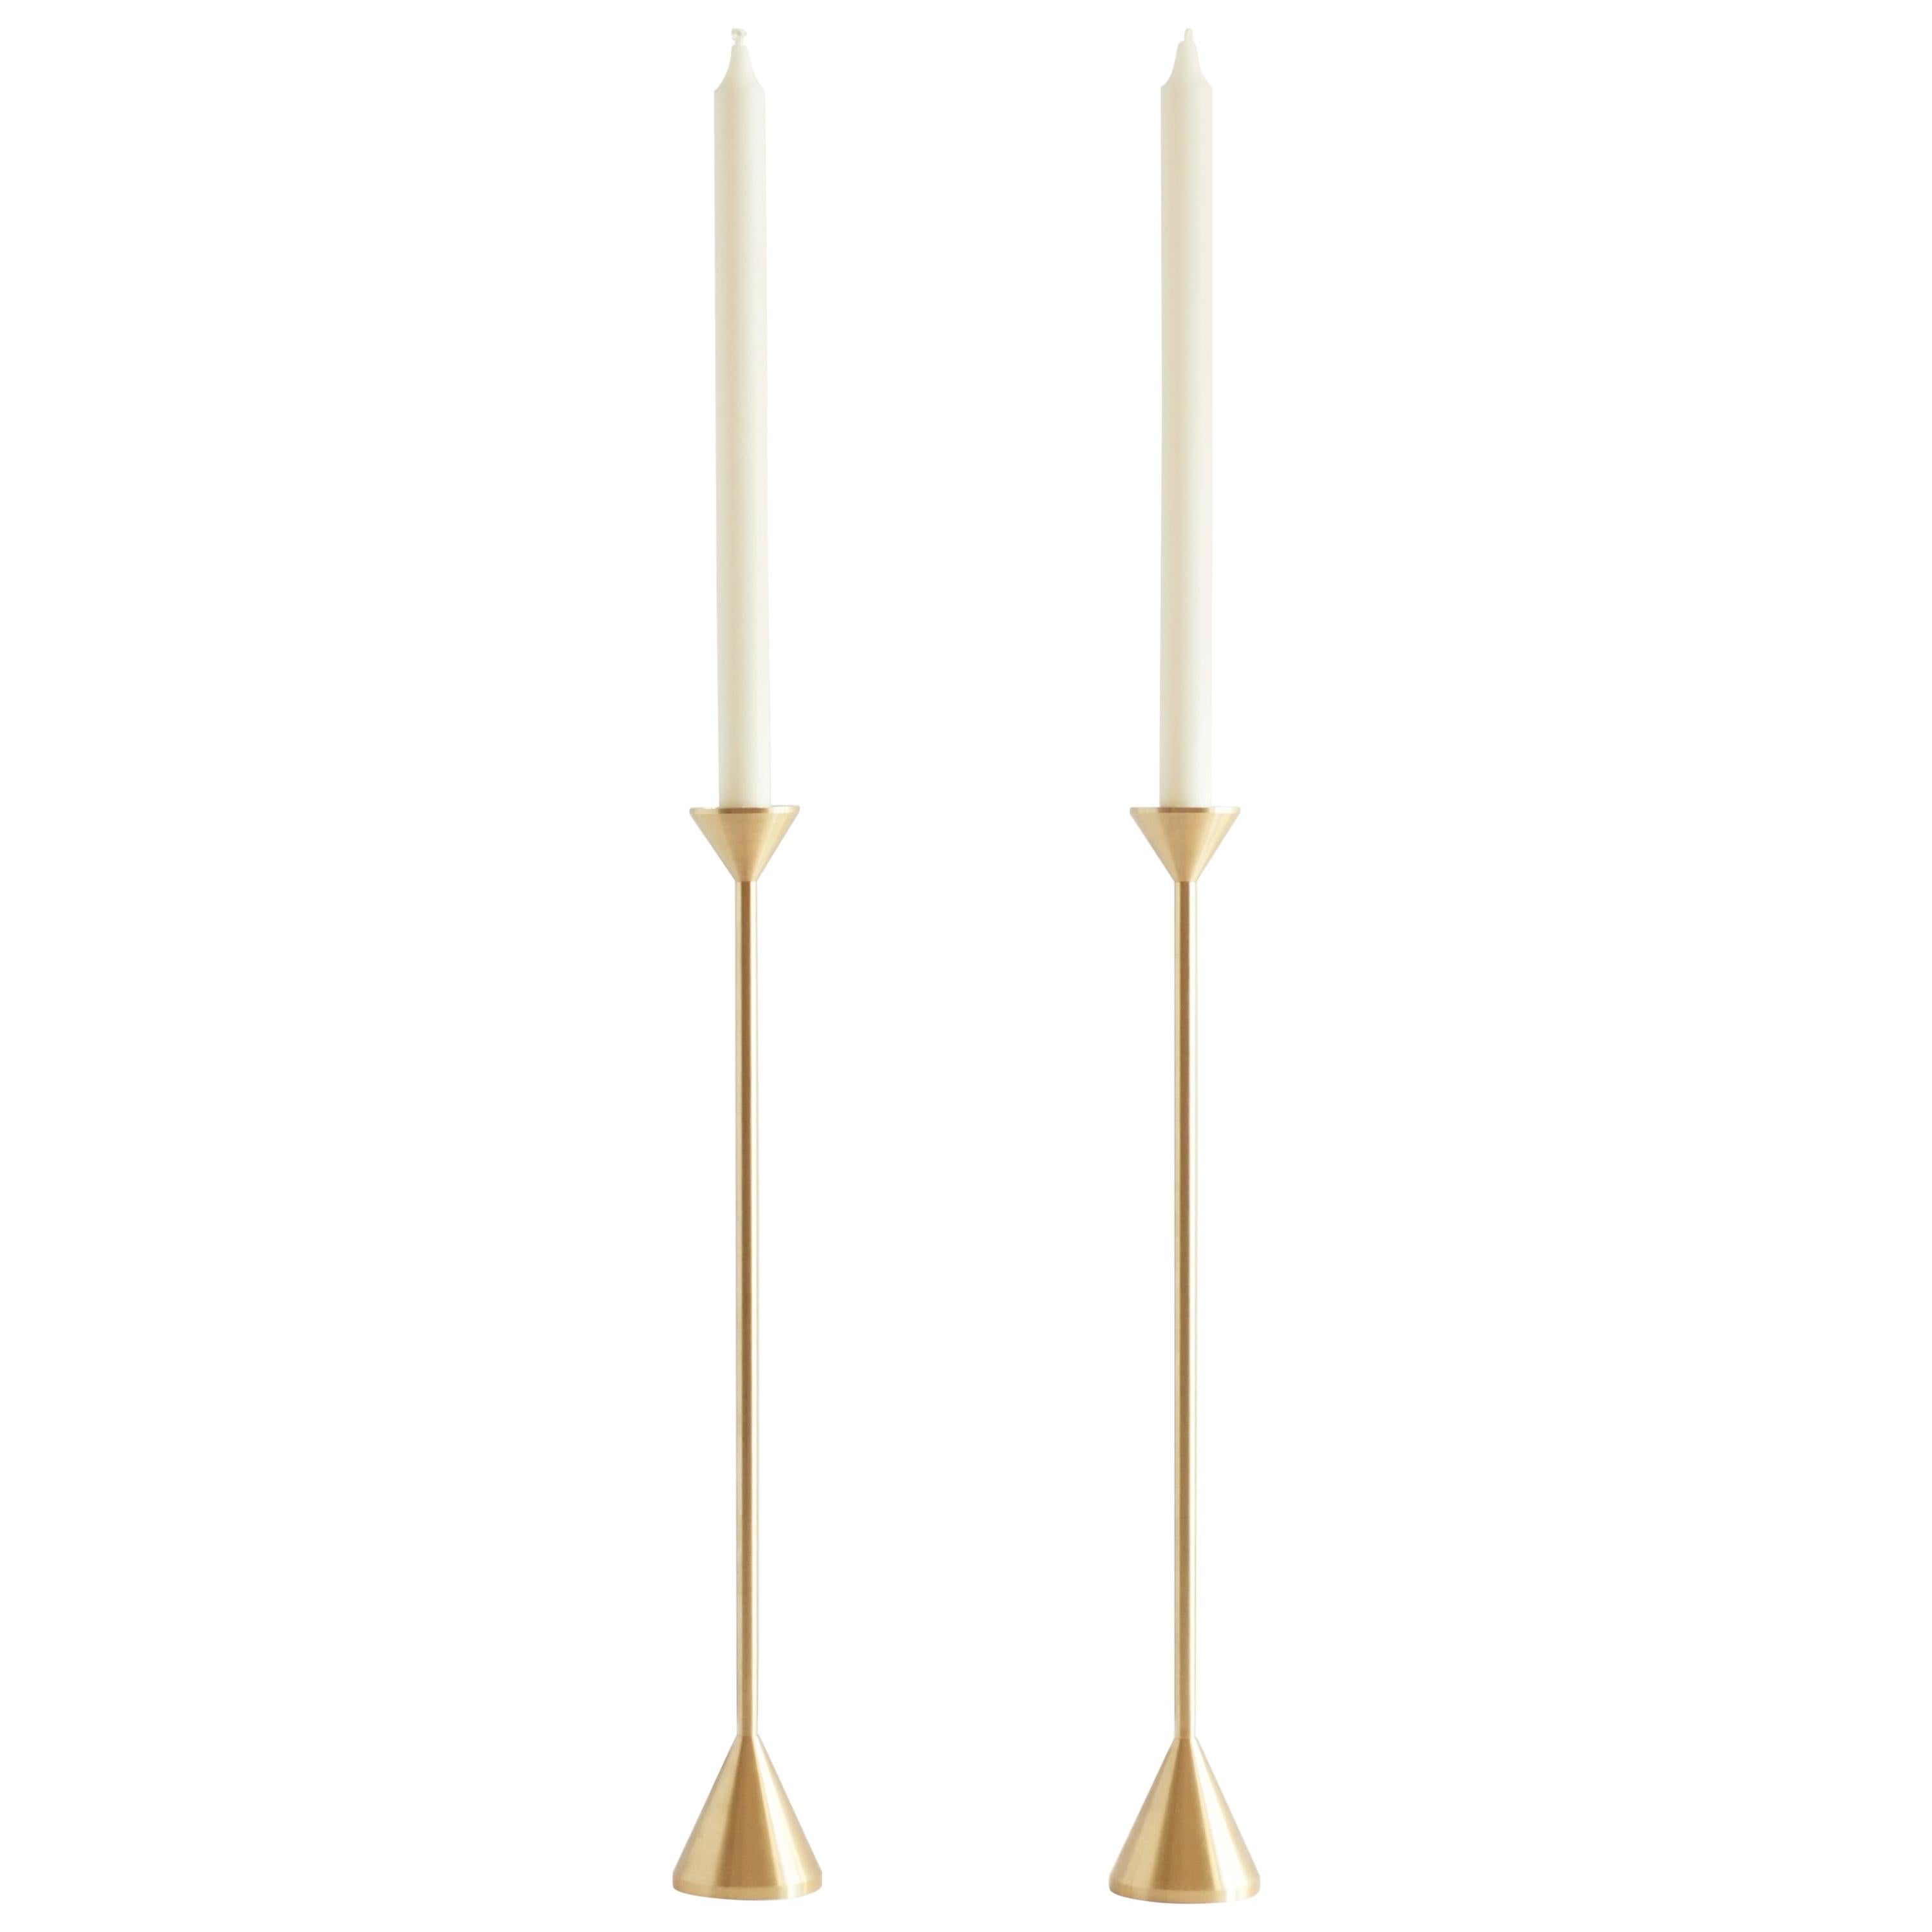 Large Contemporary Brass Cone Spindle Candle Holders by Fort Standard, in Stock